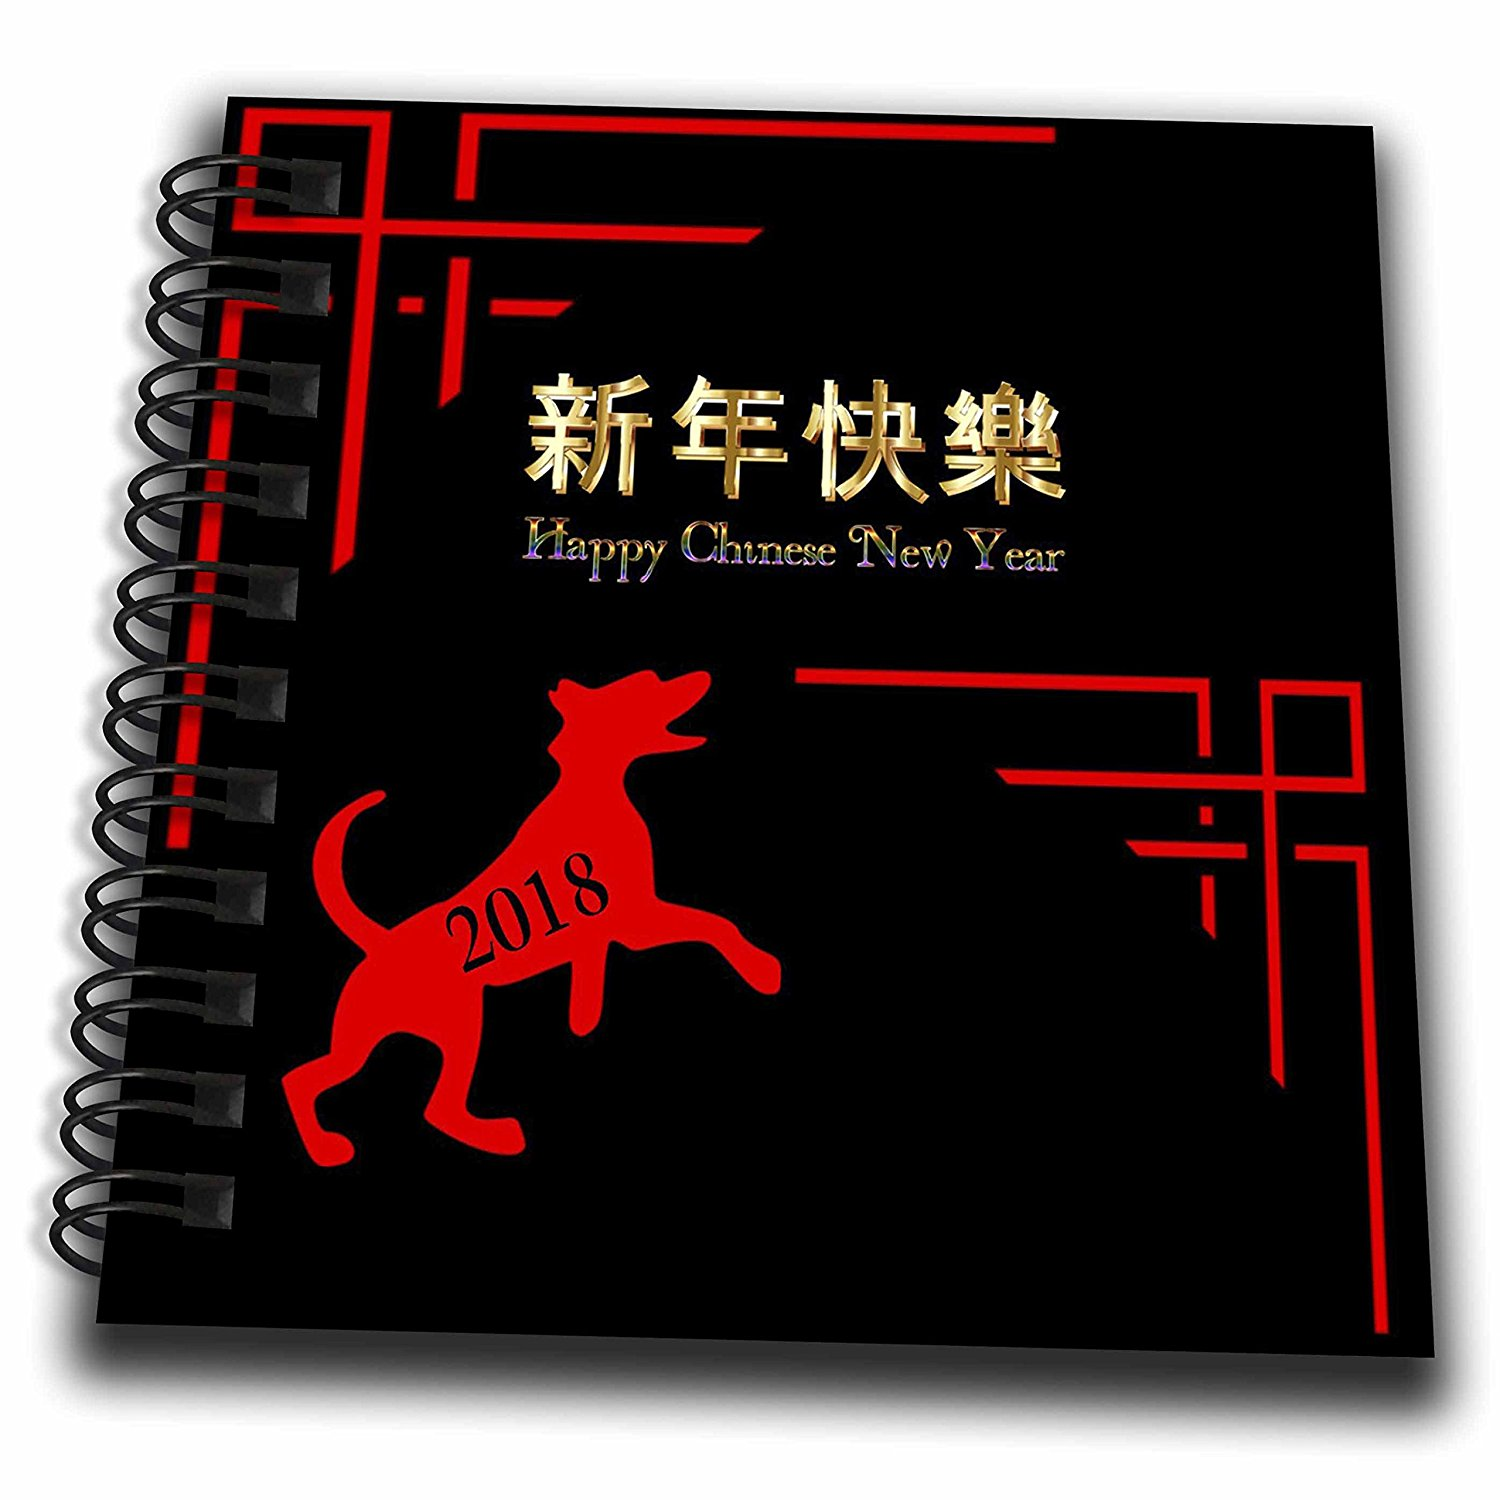 3dRose Chinese New Year - Image of Chinese Writing With Red Dog and Asian Scrolly 2018 - Mini Notepad 4 x 4 inch (db_262601_3)